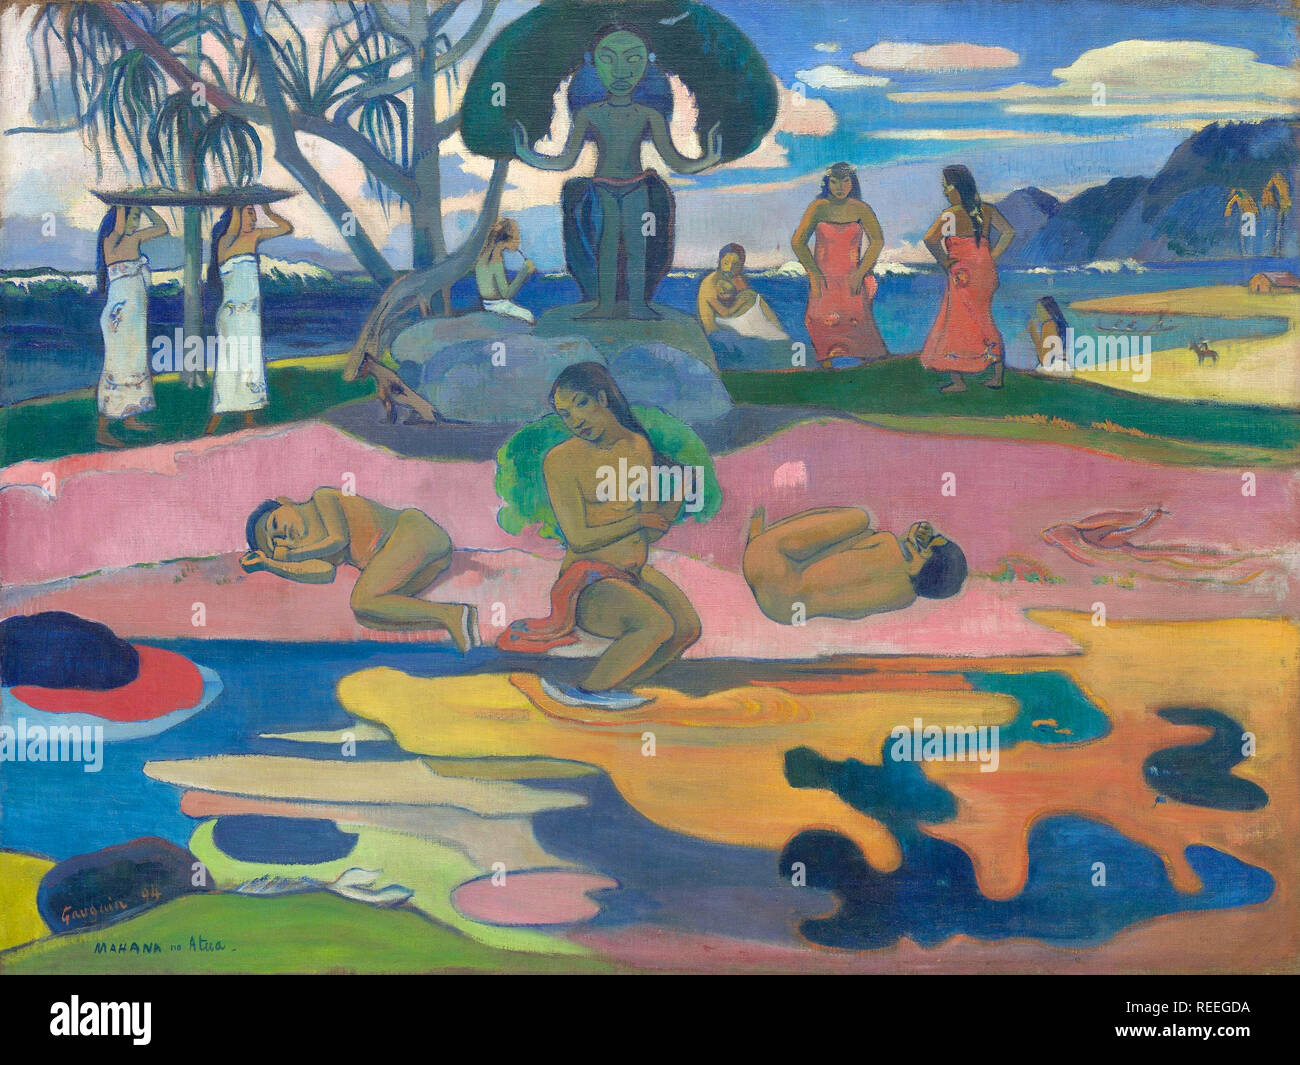 The day of God by Paul Gauguin - Stock Image